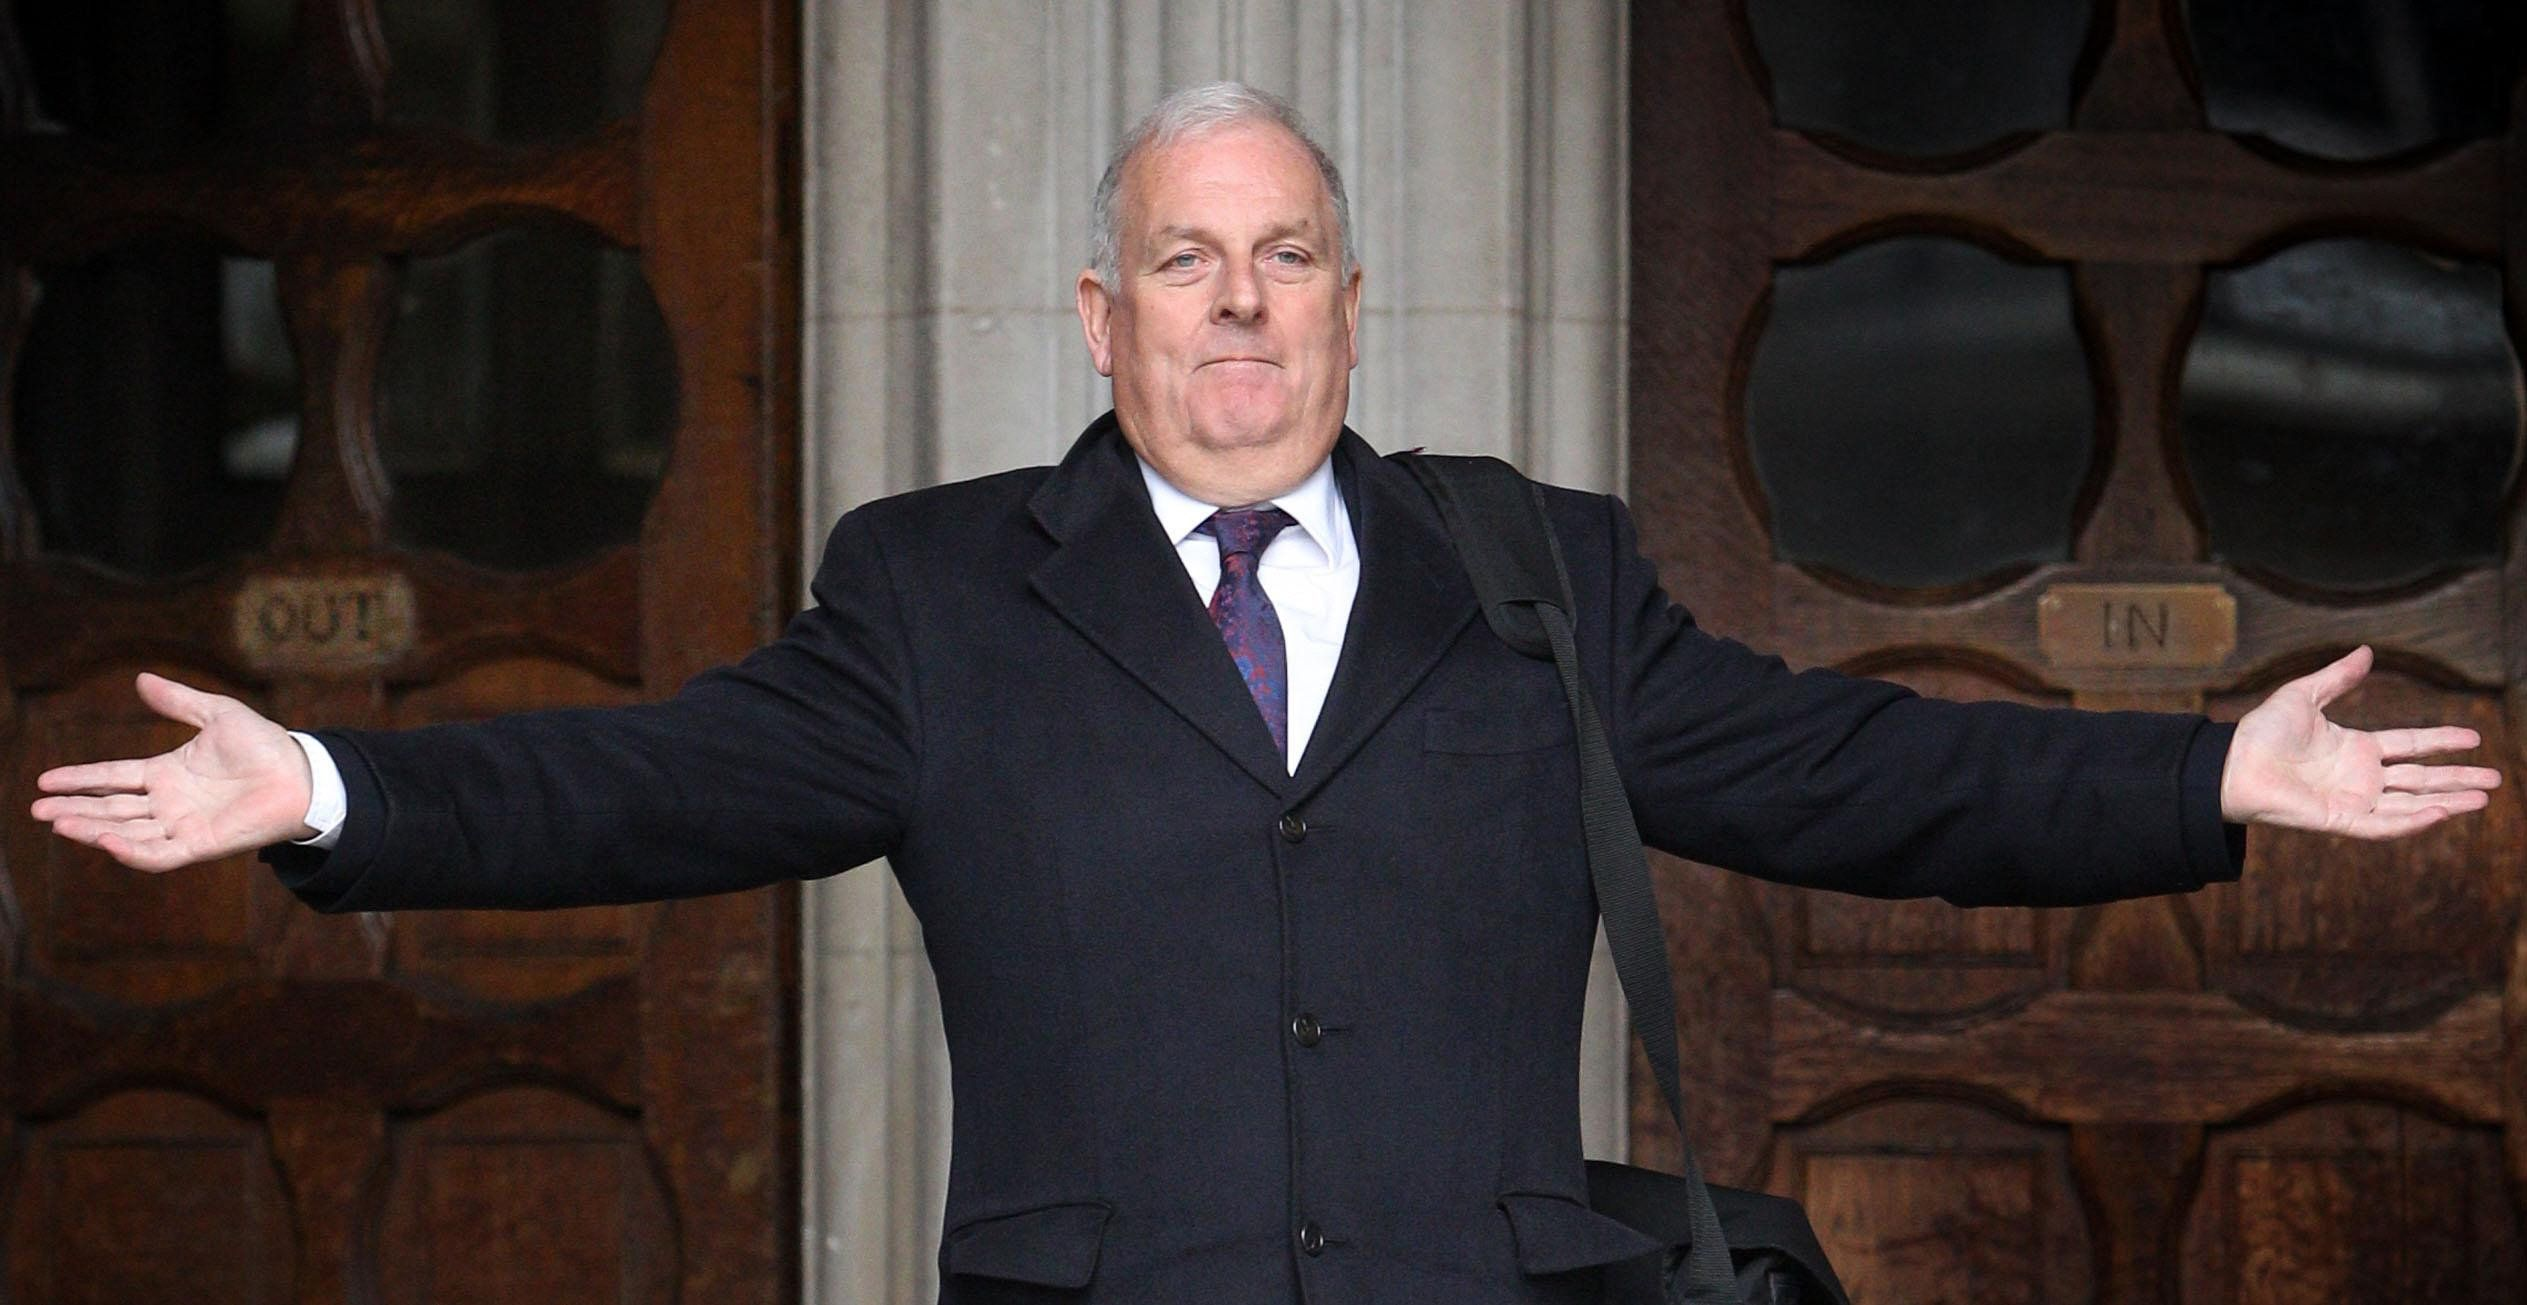 Confirmed: Kelvin MacKenzie Has Been 'Terminated' By The